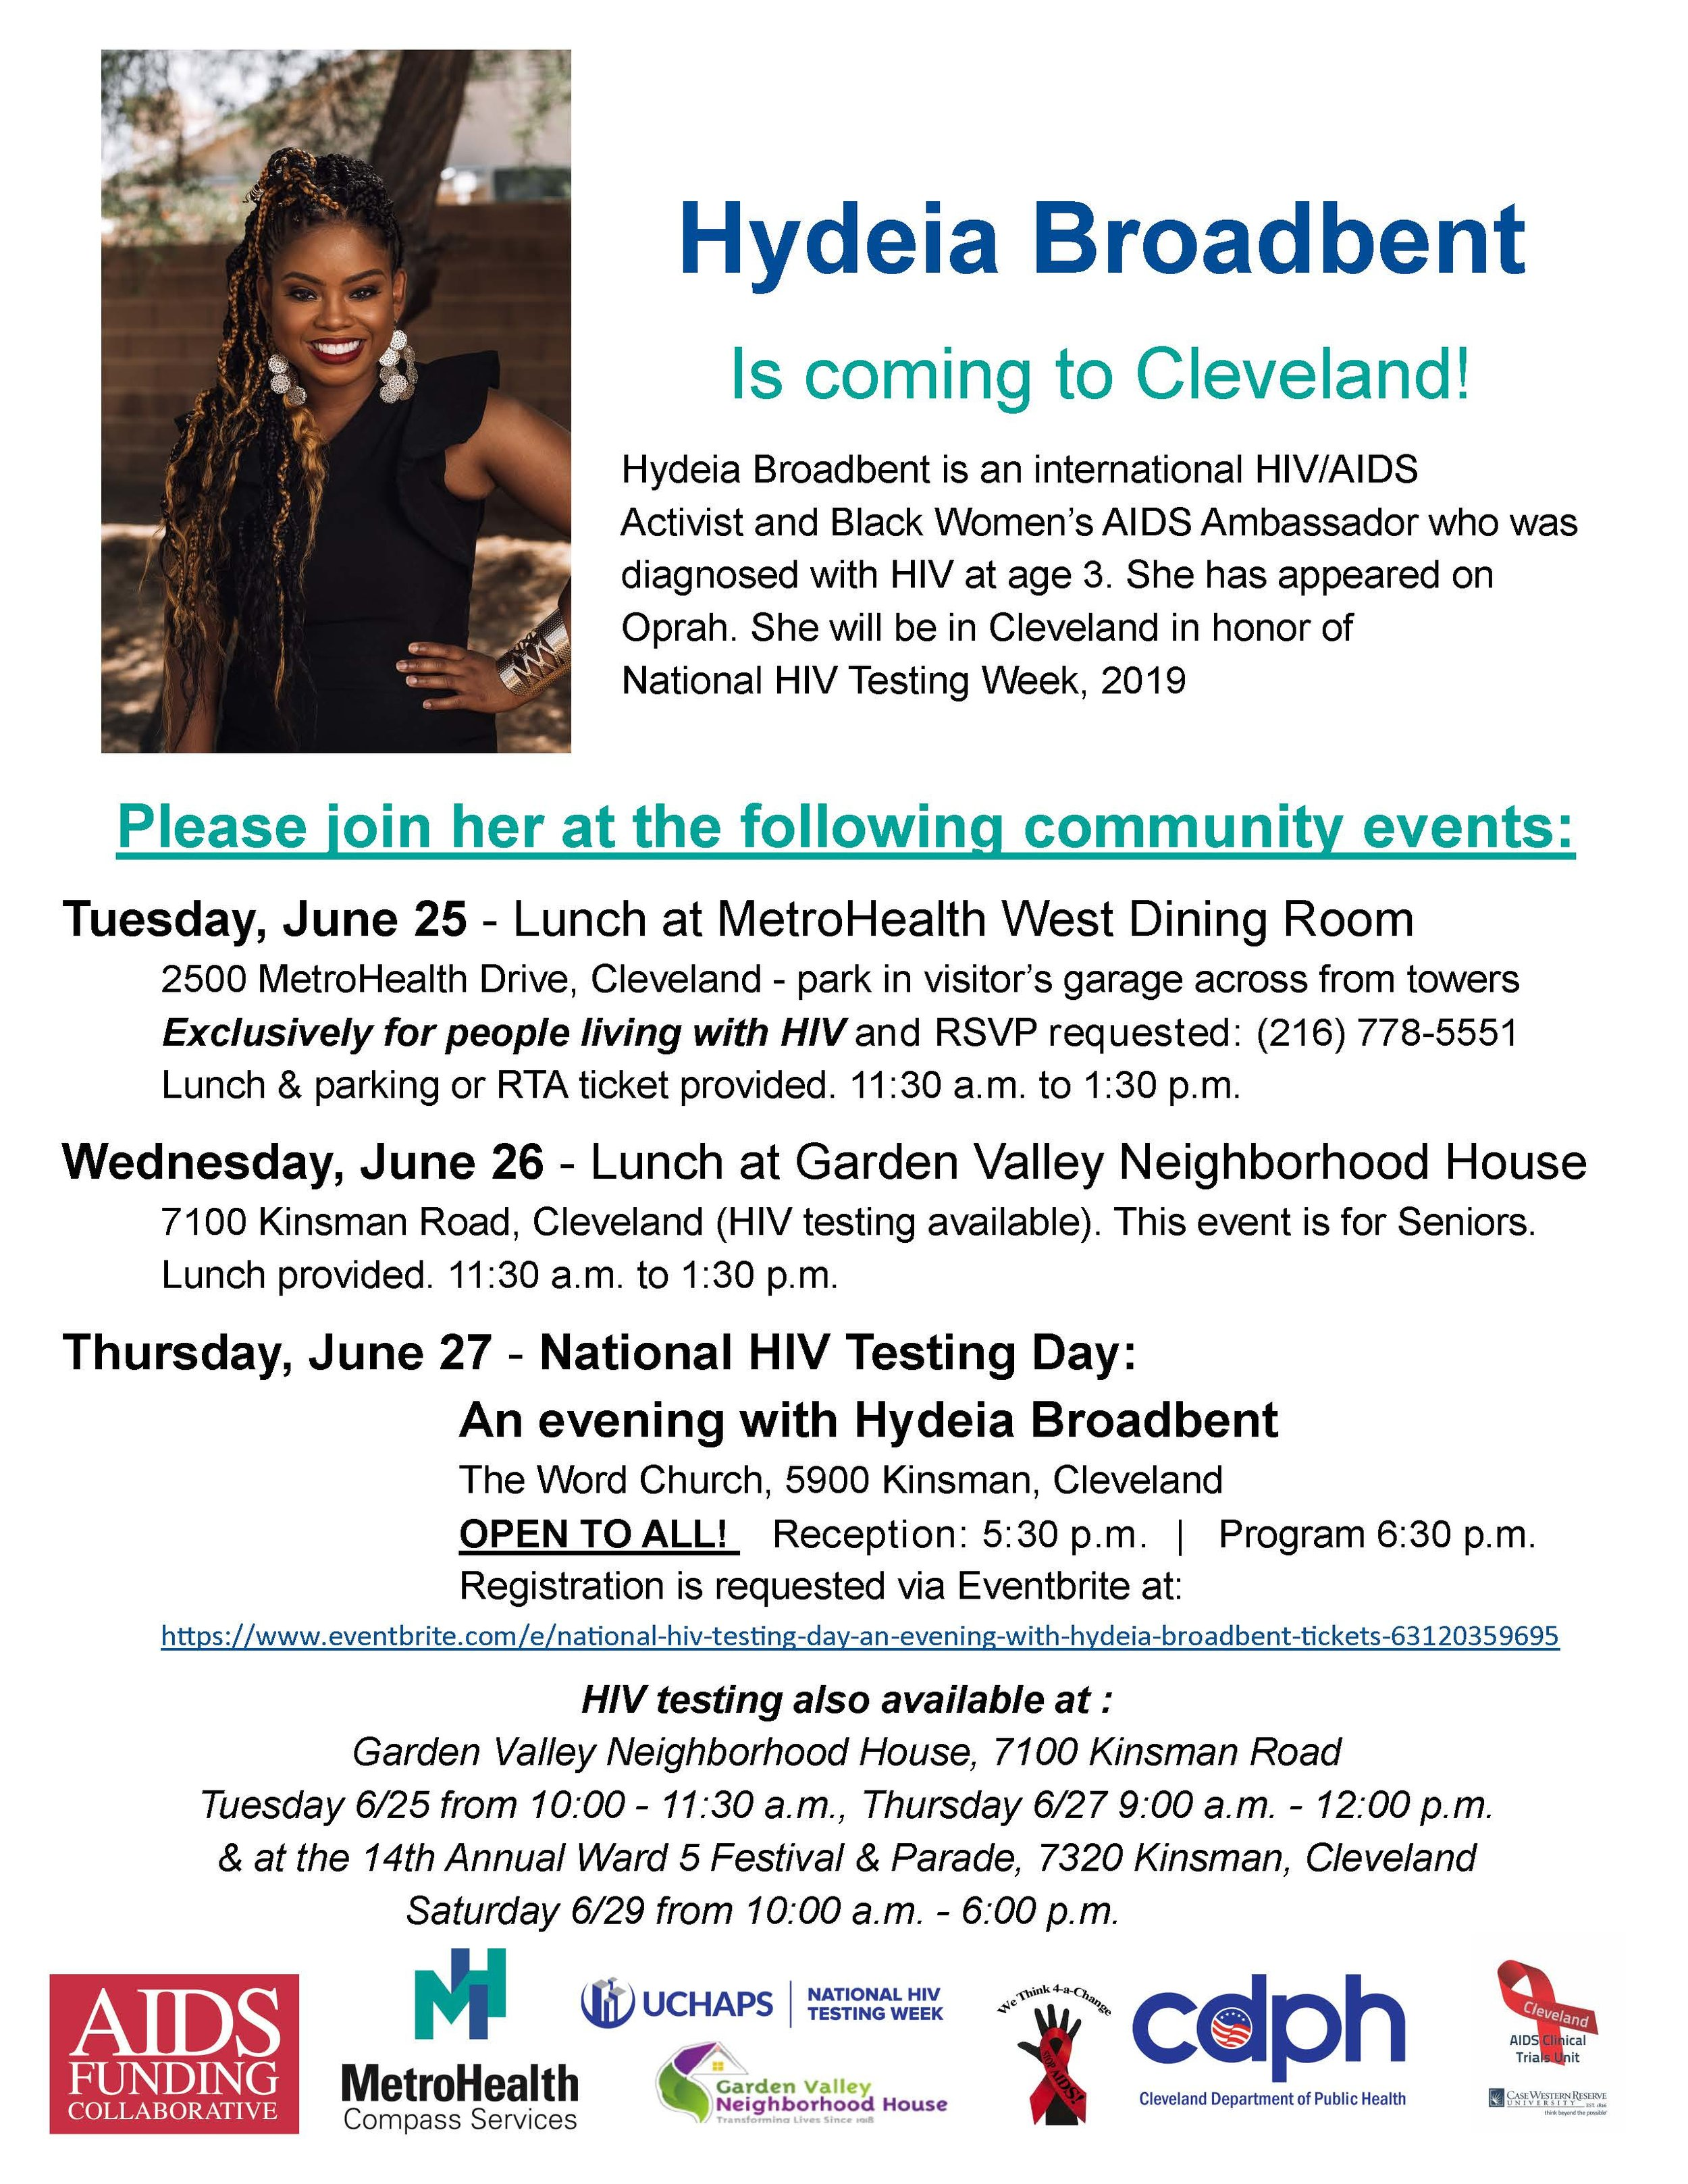 Hydeia Broadbent community events flyer.jpg